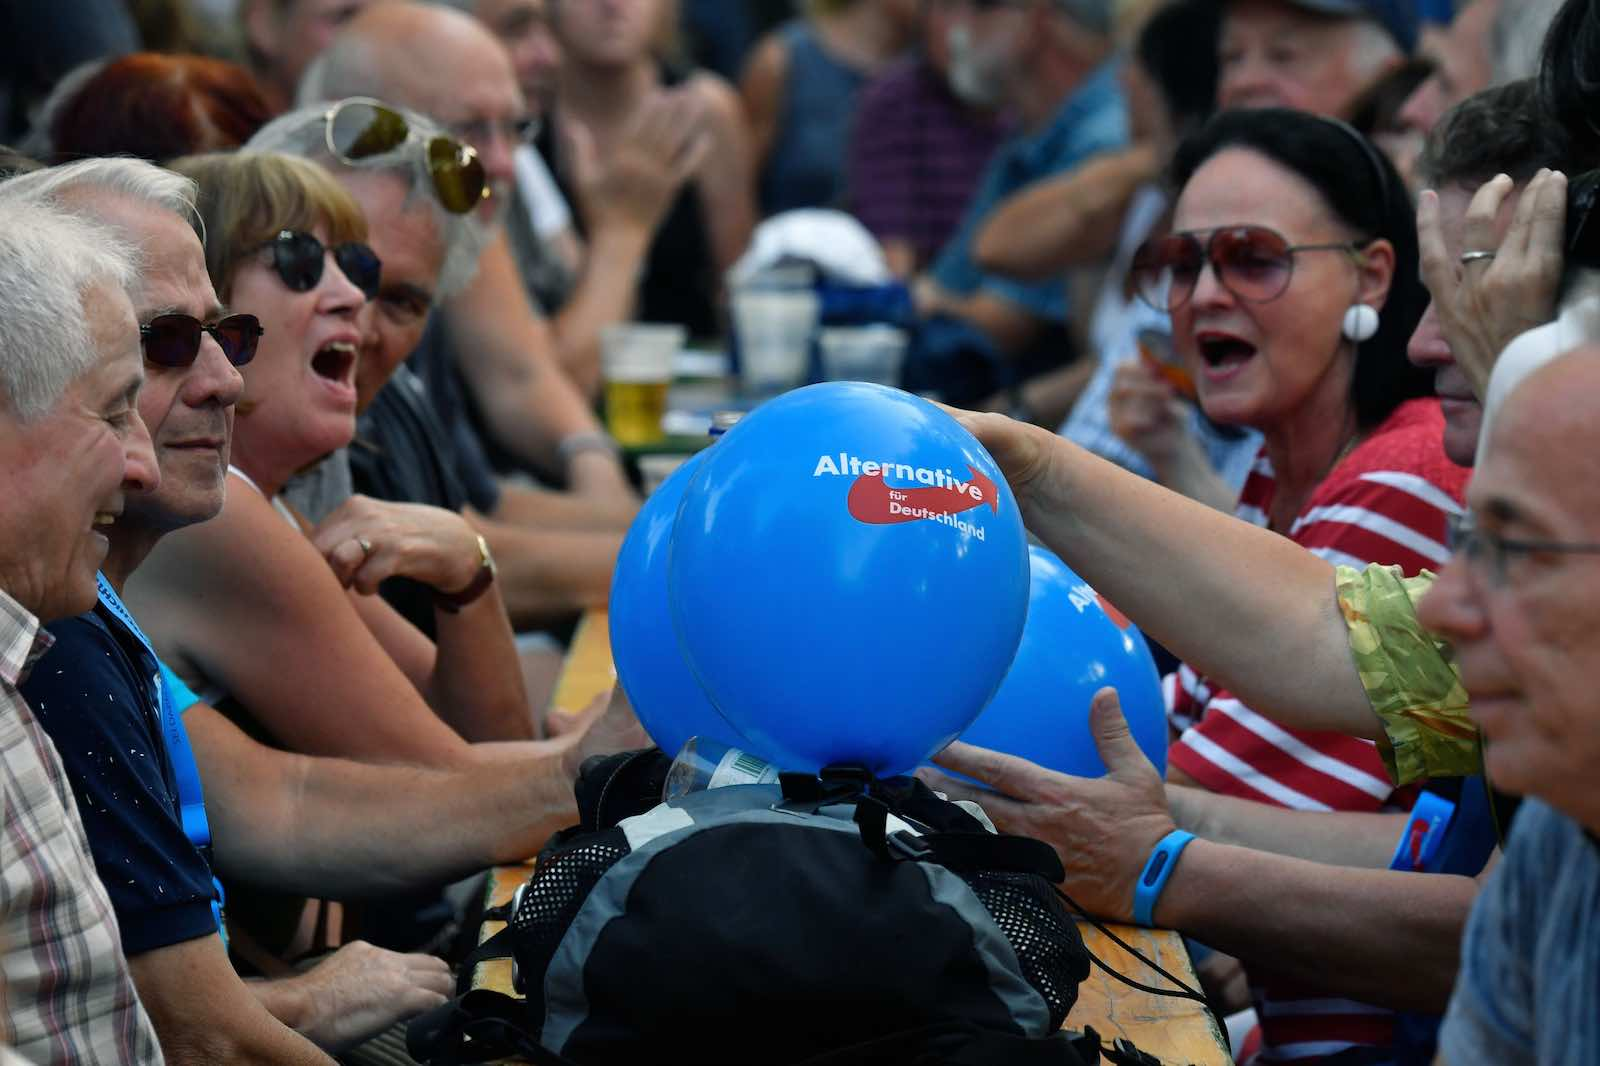 An election rally of the far-right party Alternative for Germany ahead of state elections in Brandenburg and Saxony (Photo: John MacDougall/AFP/Getty Images)